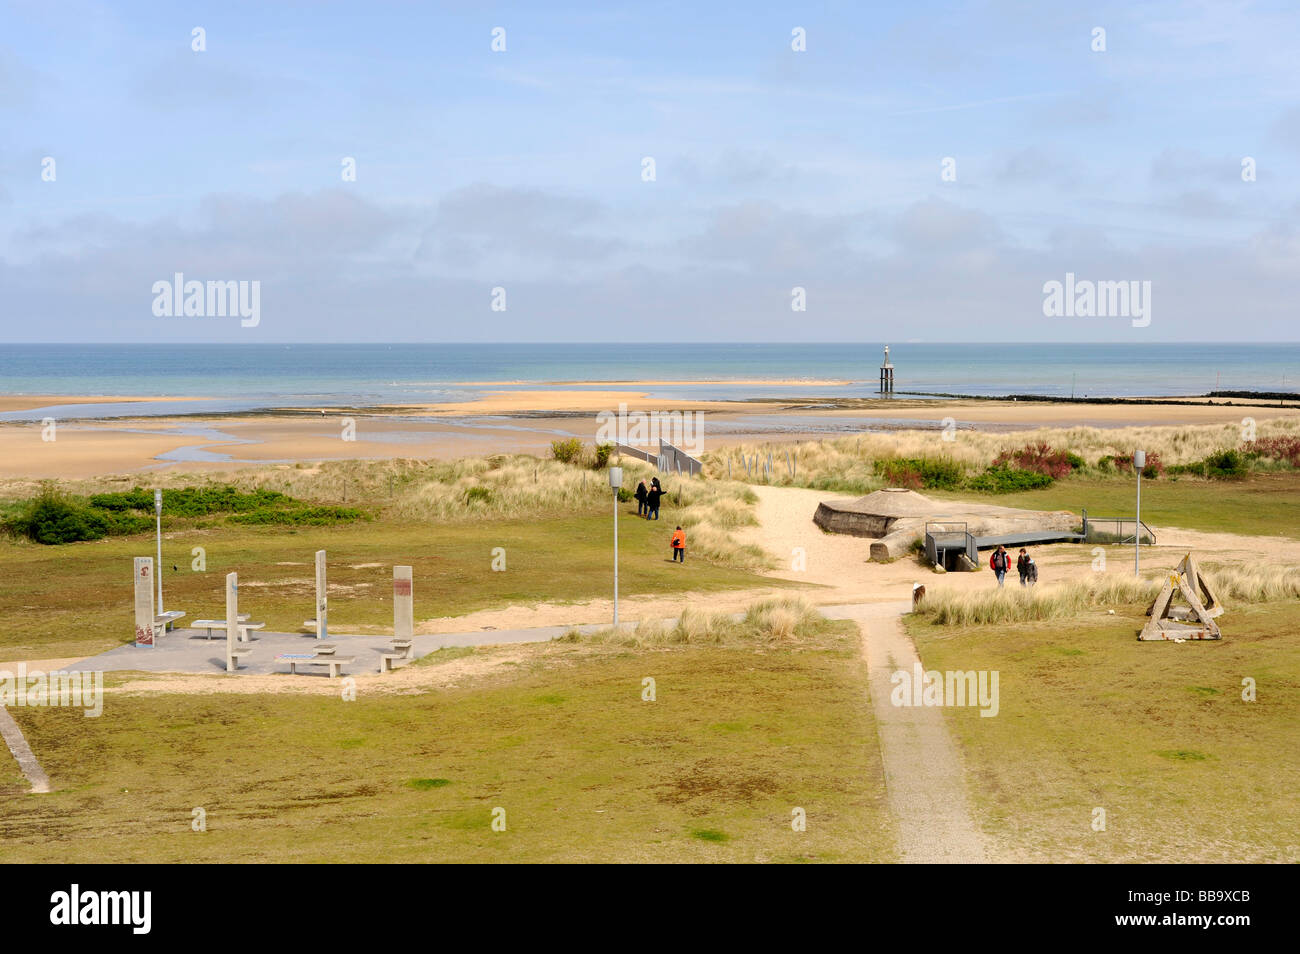 d day juno beach courseulles sur mer landing beach normandy france stock photo royalty free. Black Bedroom Furniture Sets. Home Design Ideas